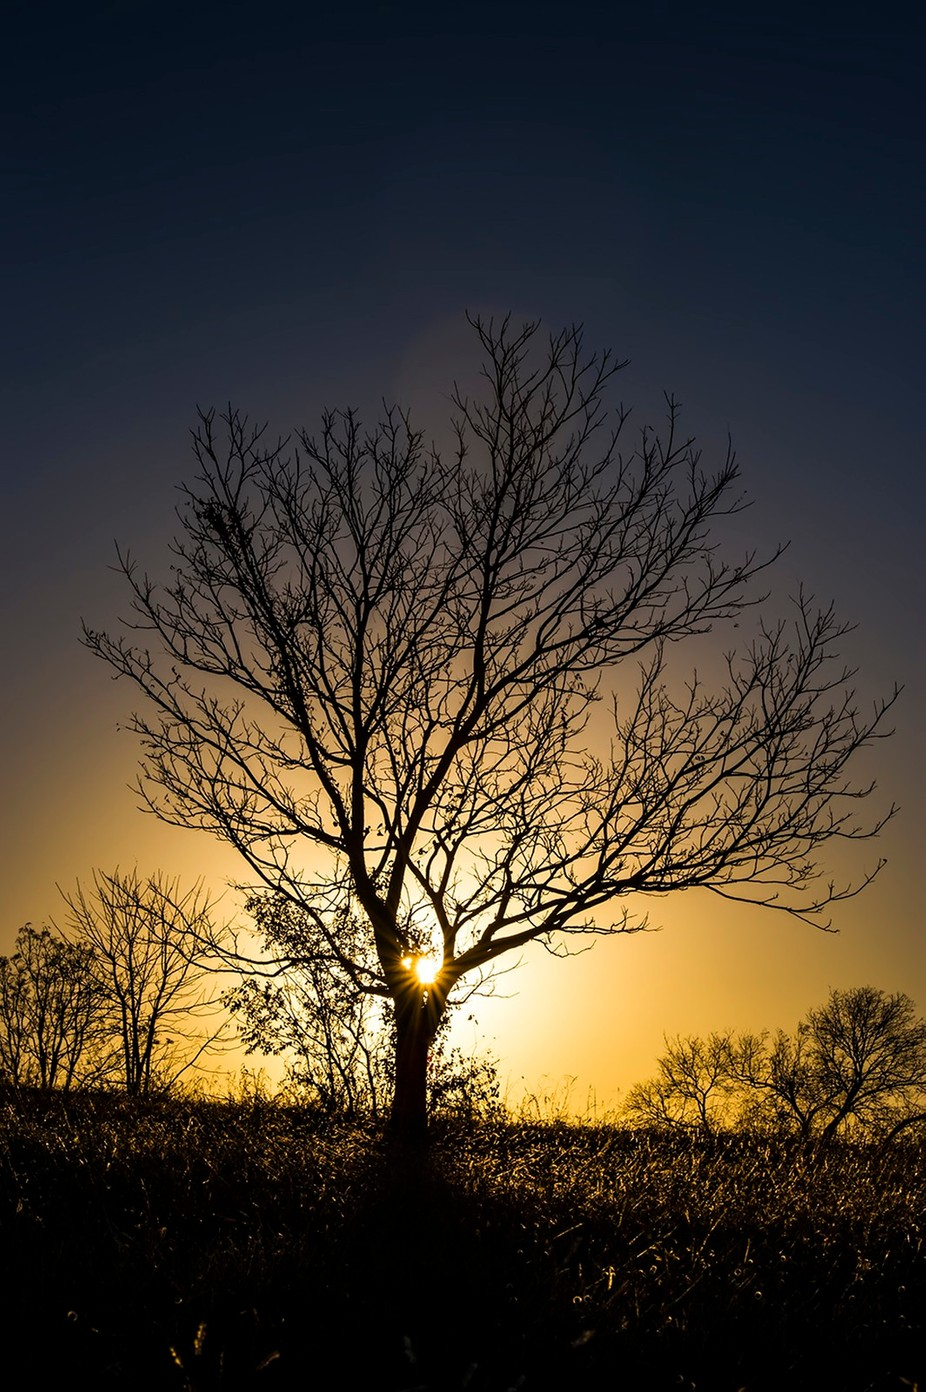 Silhouette of tree by gregblomberg - Silhouettes Of Trees Photo Contest